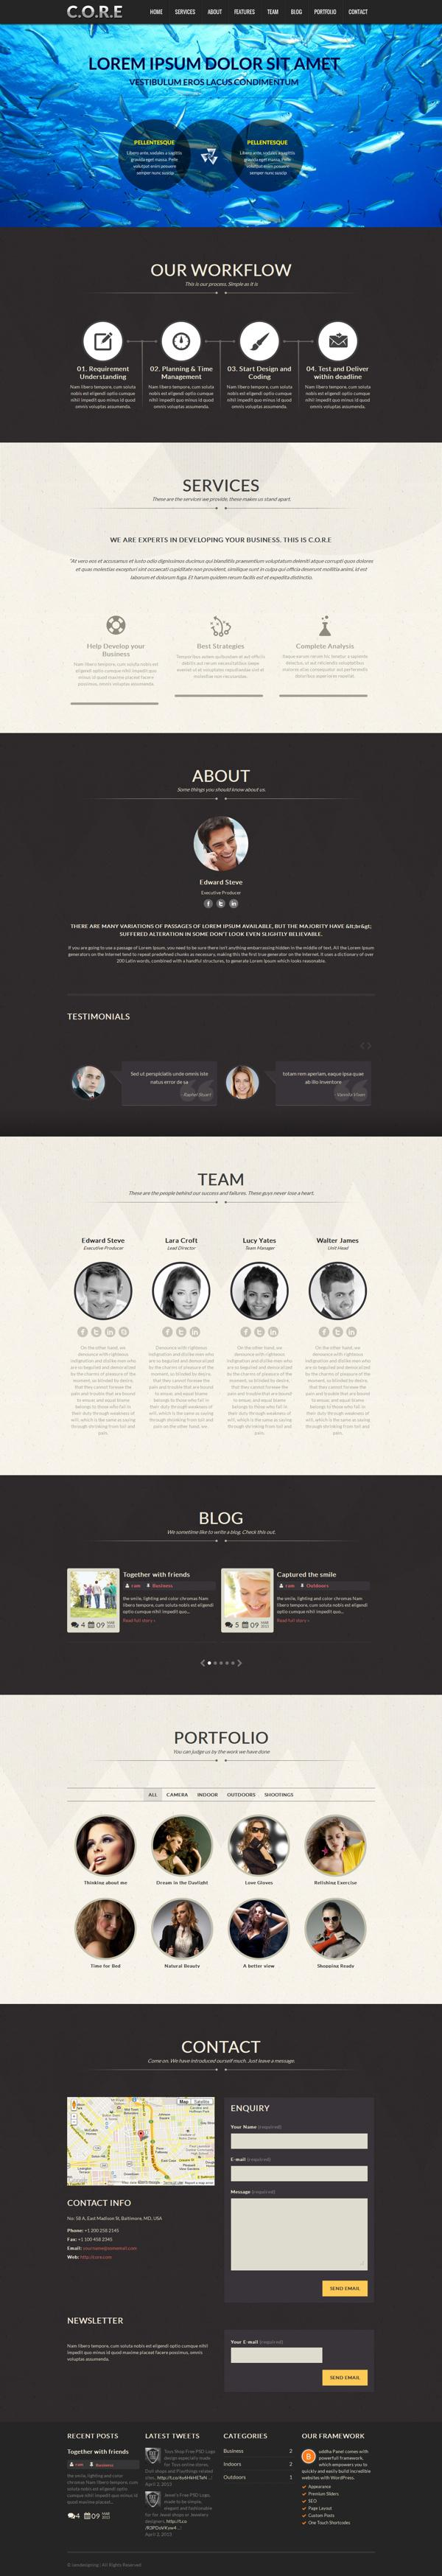 Core - Responsive One Page WordPress Theme on